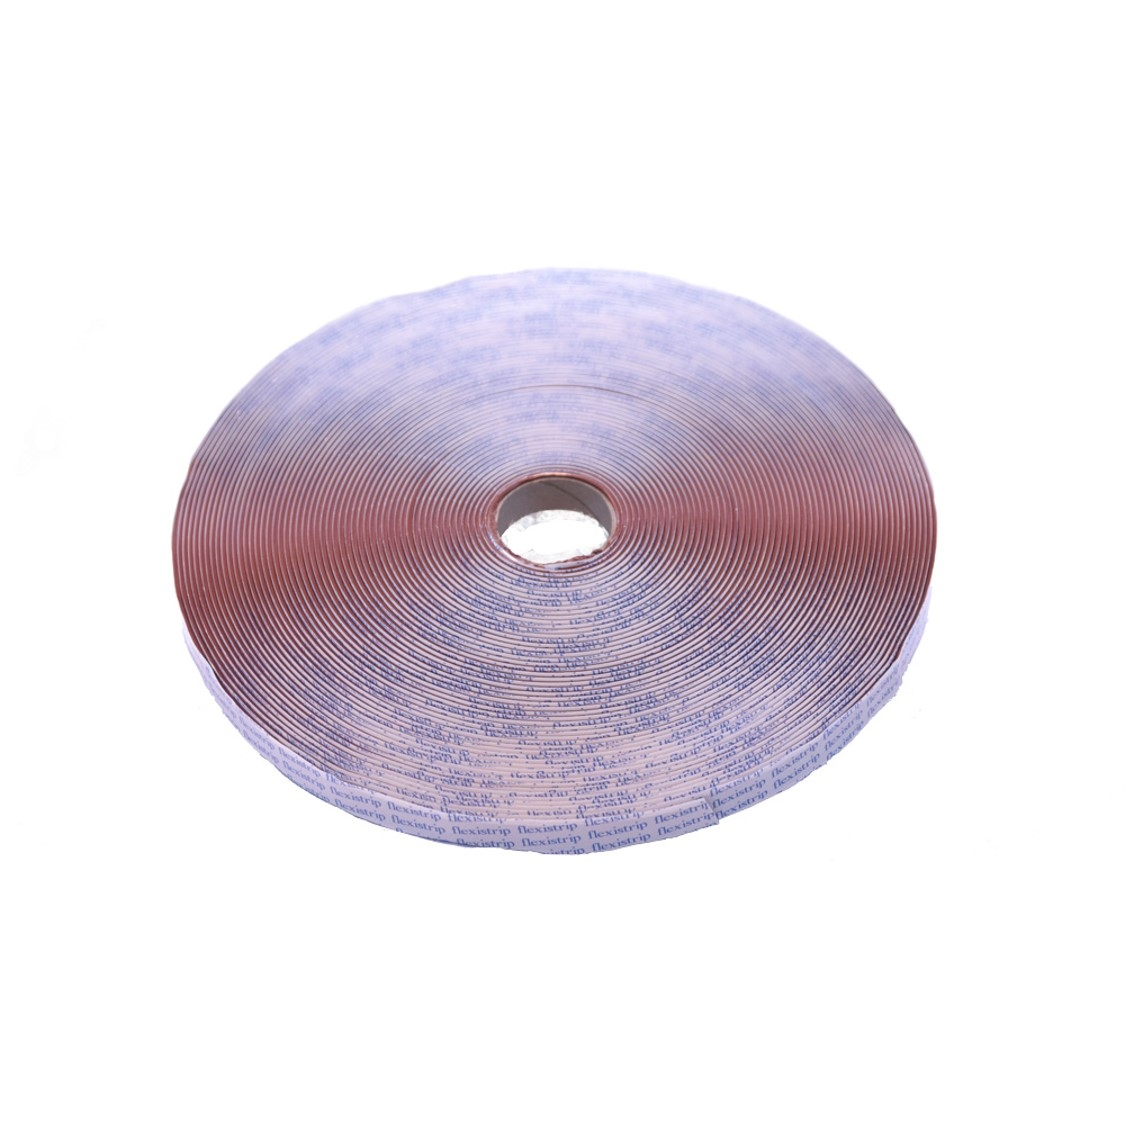 Flexistrip 9 x 2.5mm Mahogany Butyl Glazing Strip (19m Reel)